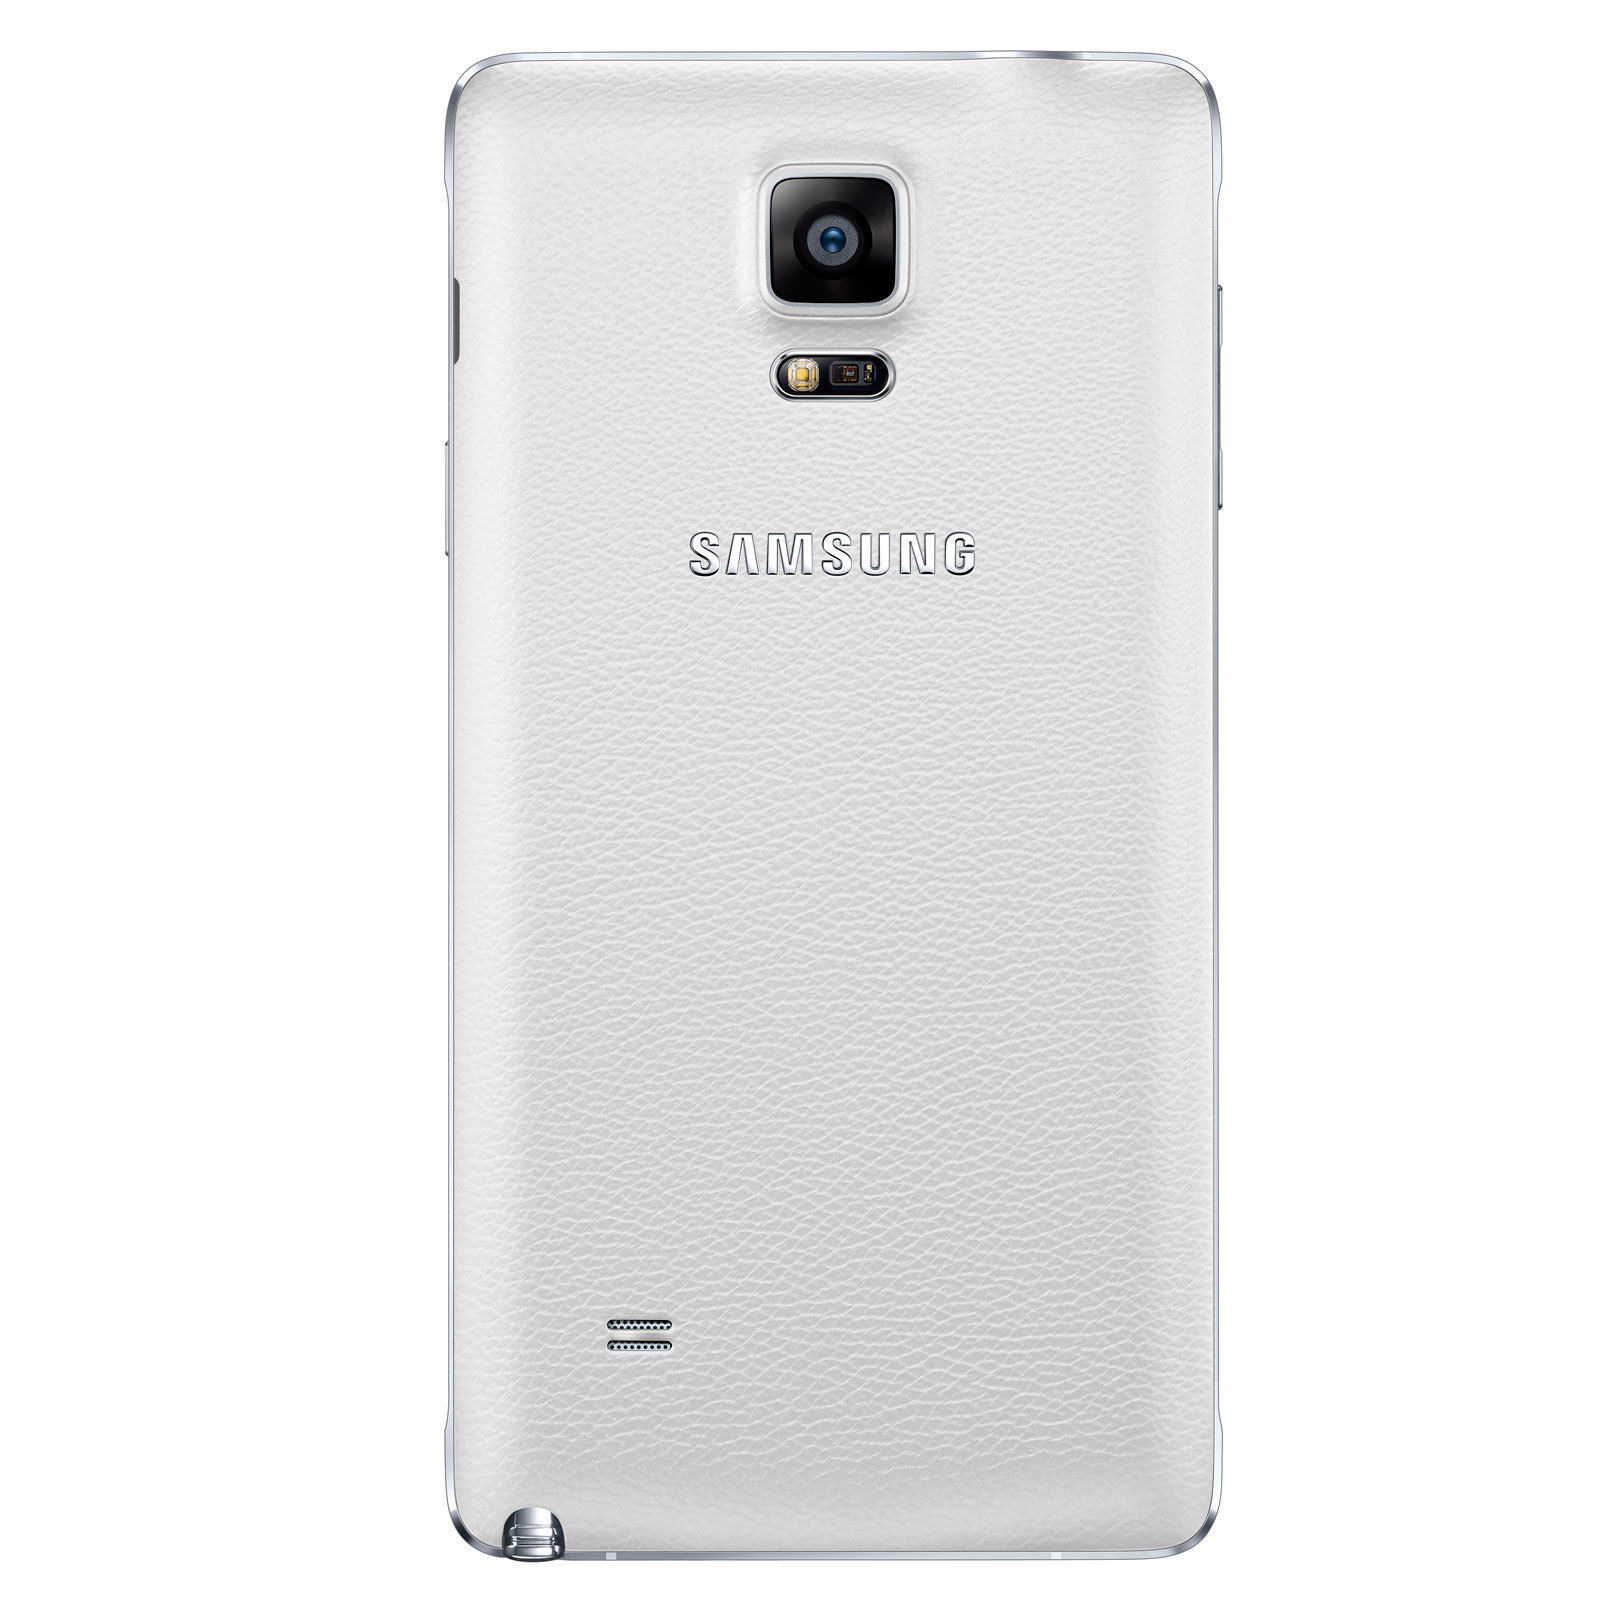 Galaxy Note 4 - 32 Go - Blanc - Reconditionné